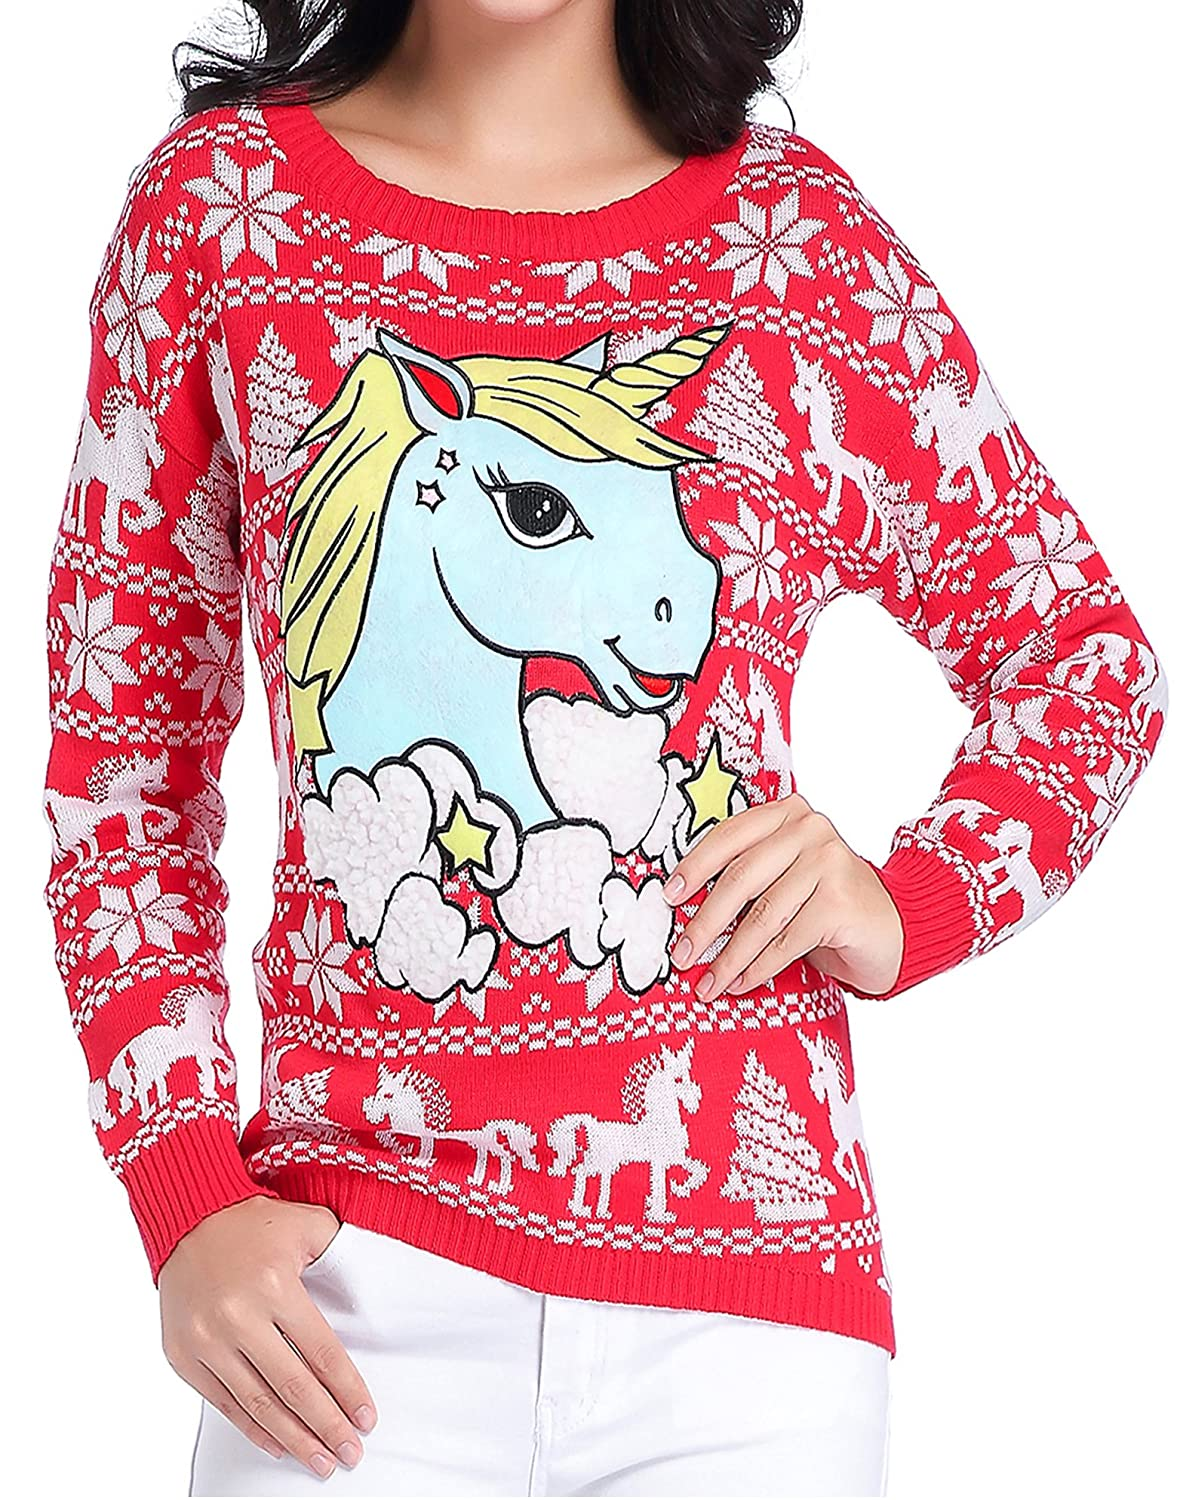 V28 Ugly Christmas Sweater, Women Girl Junior Unicorn Clothes ...